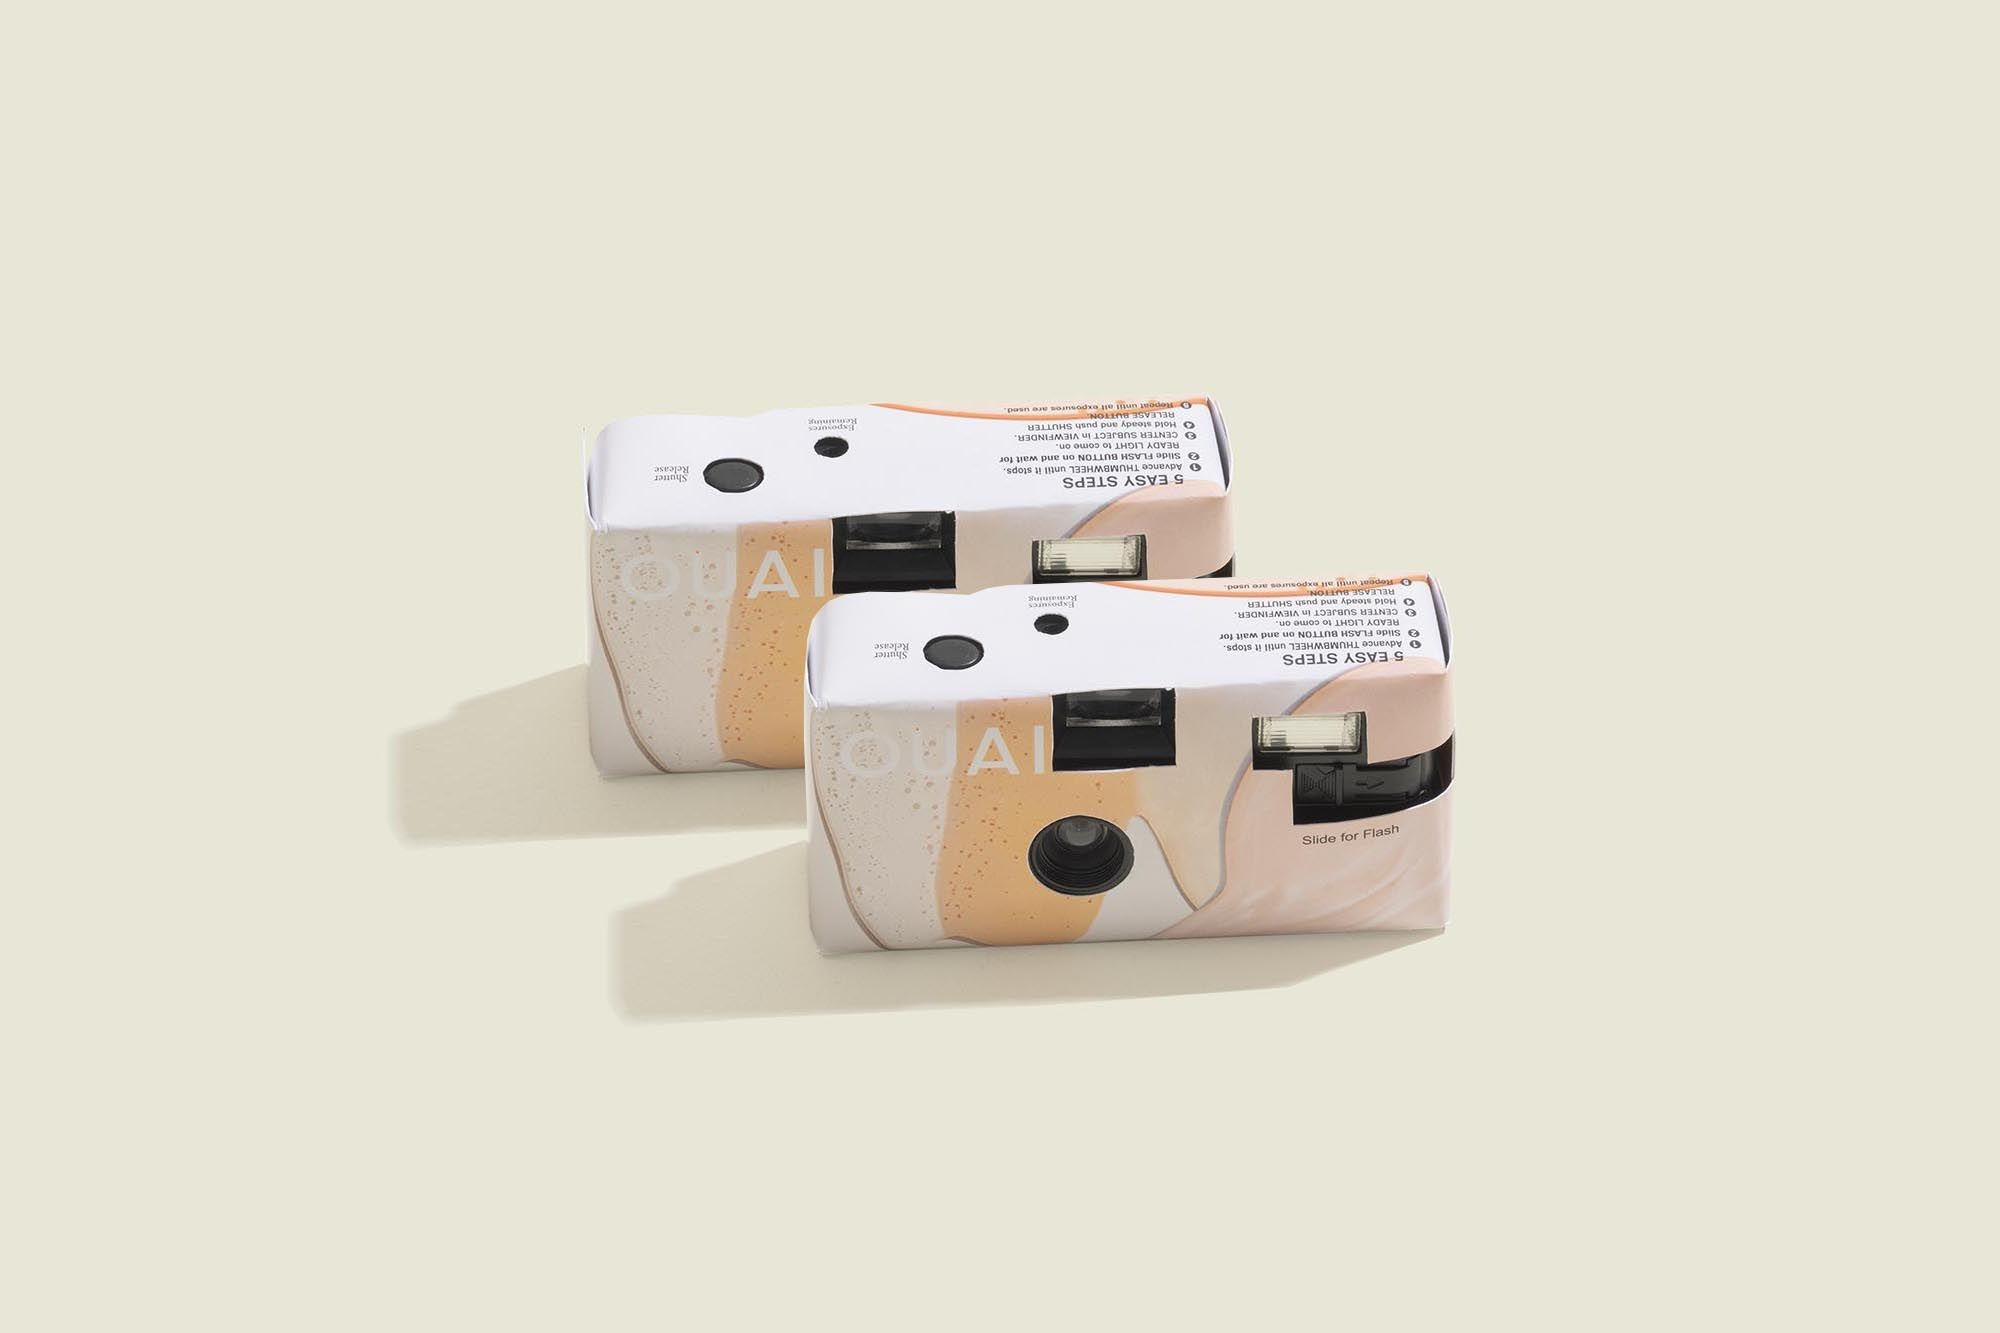 Set of disposable cameras